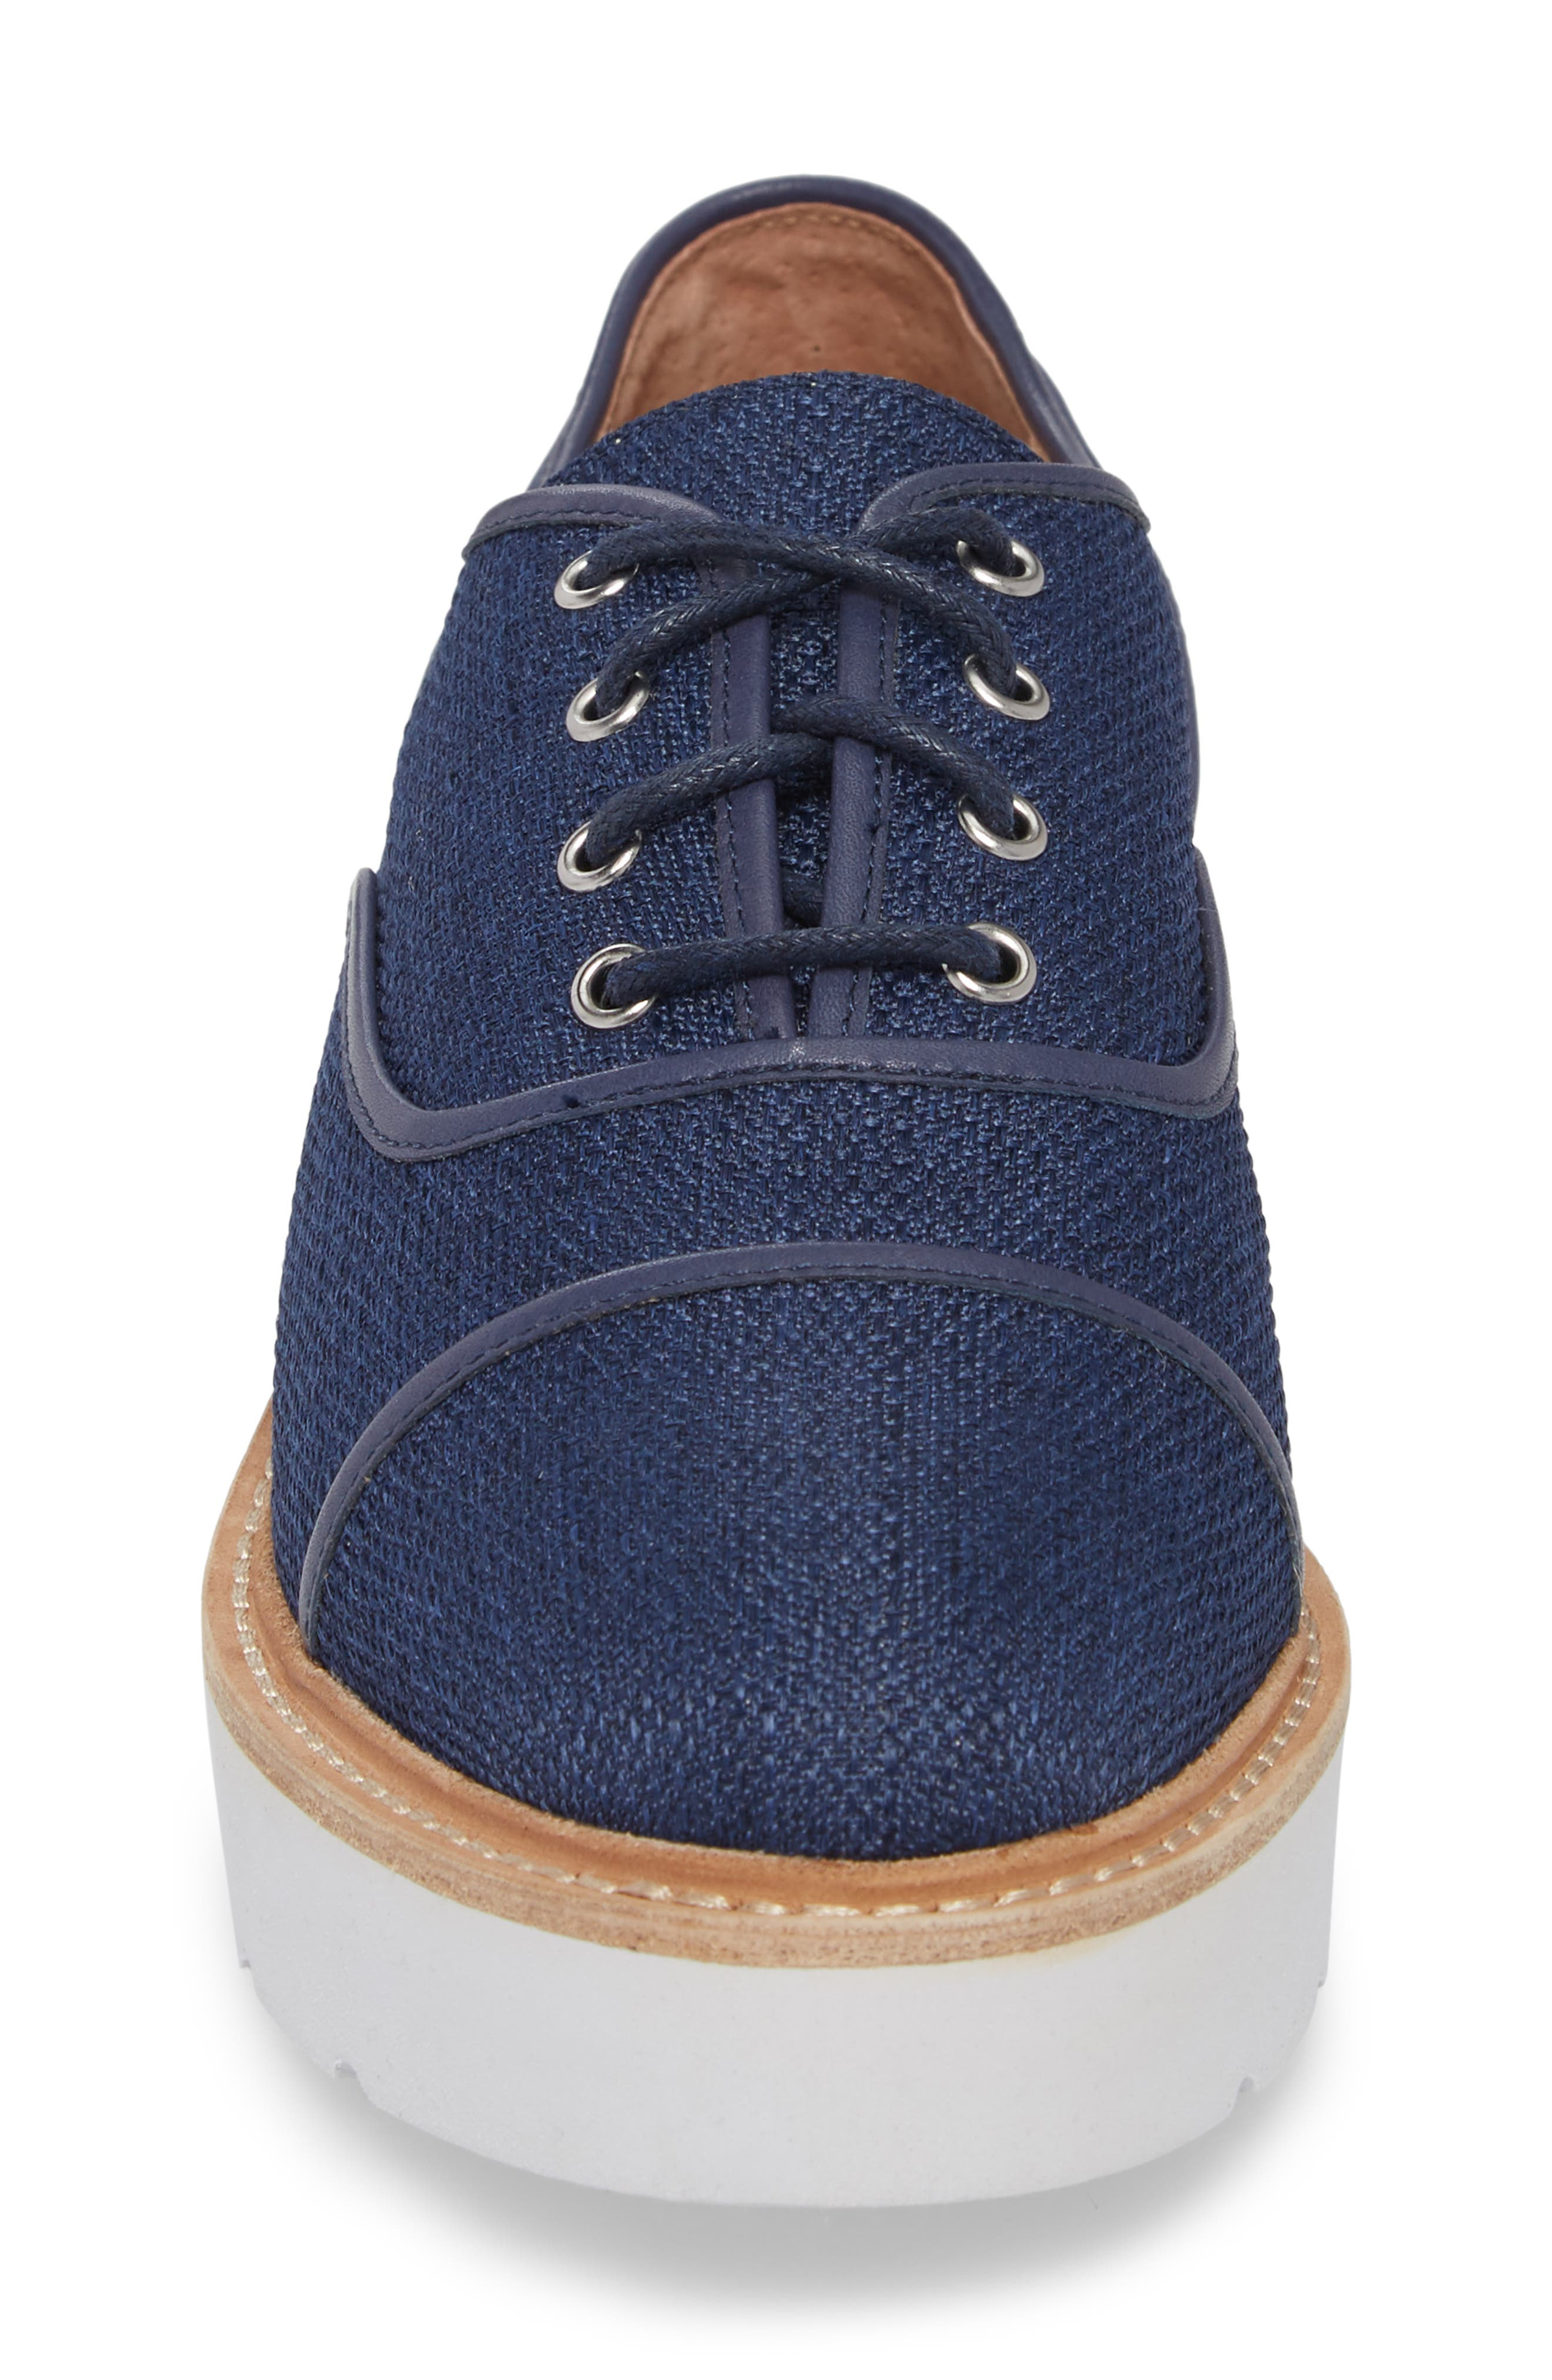 Mavis Cap Toe Platform Sneaker,                             Alternate thumbnail 4, color,                             Blue Fabric